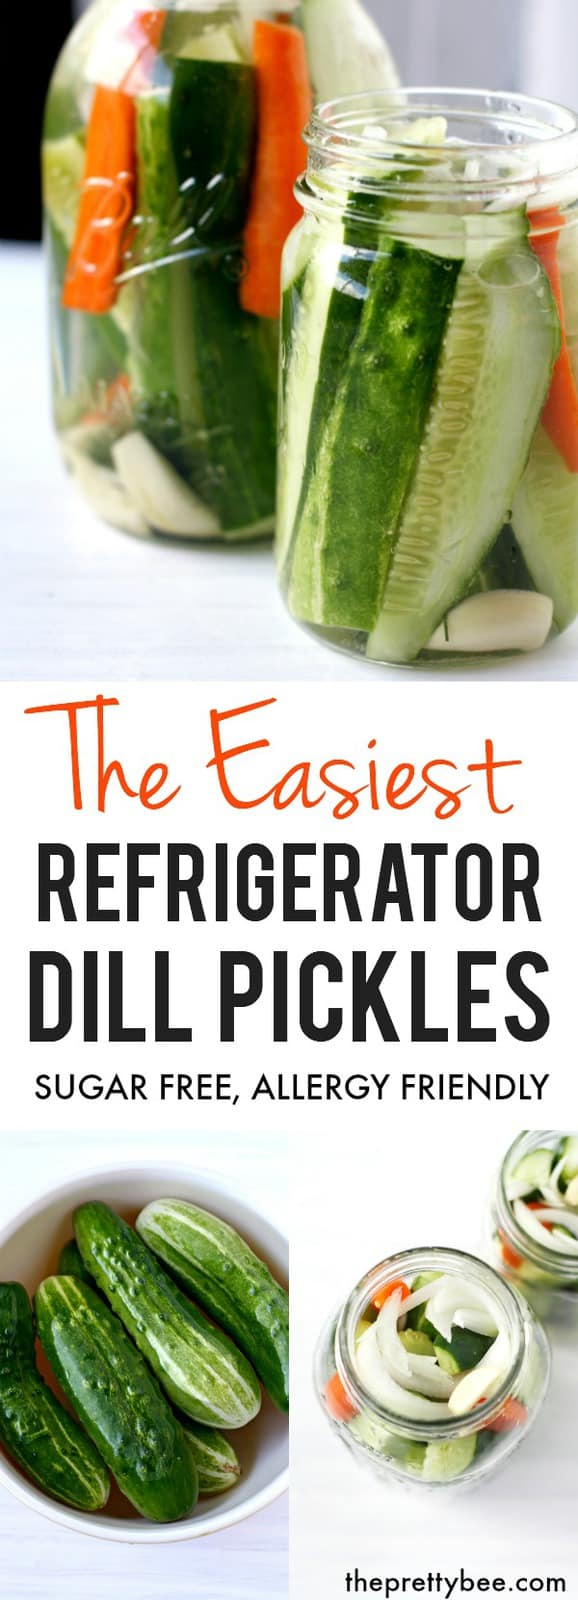 These easy refrigerator dill pickles are crisp, salty, and garlicky! These are a summer favorite! #glutenfree #dairyfree #vegan #grainfree #pickles